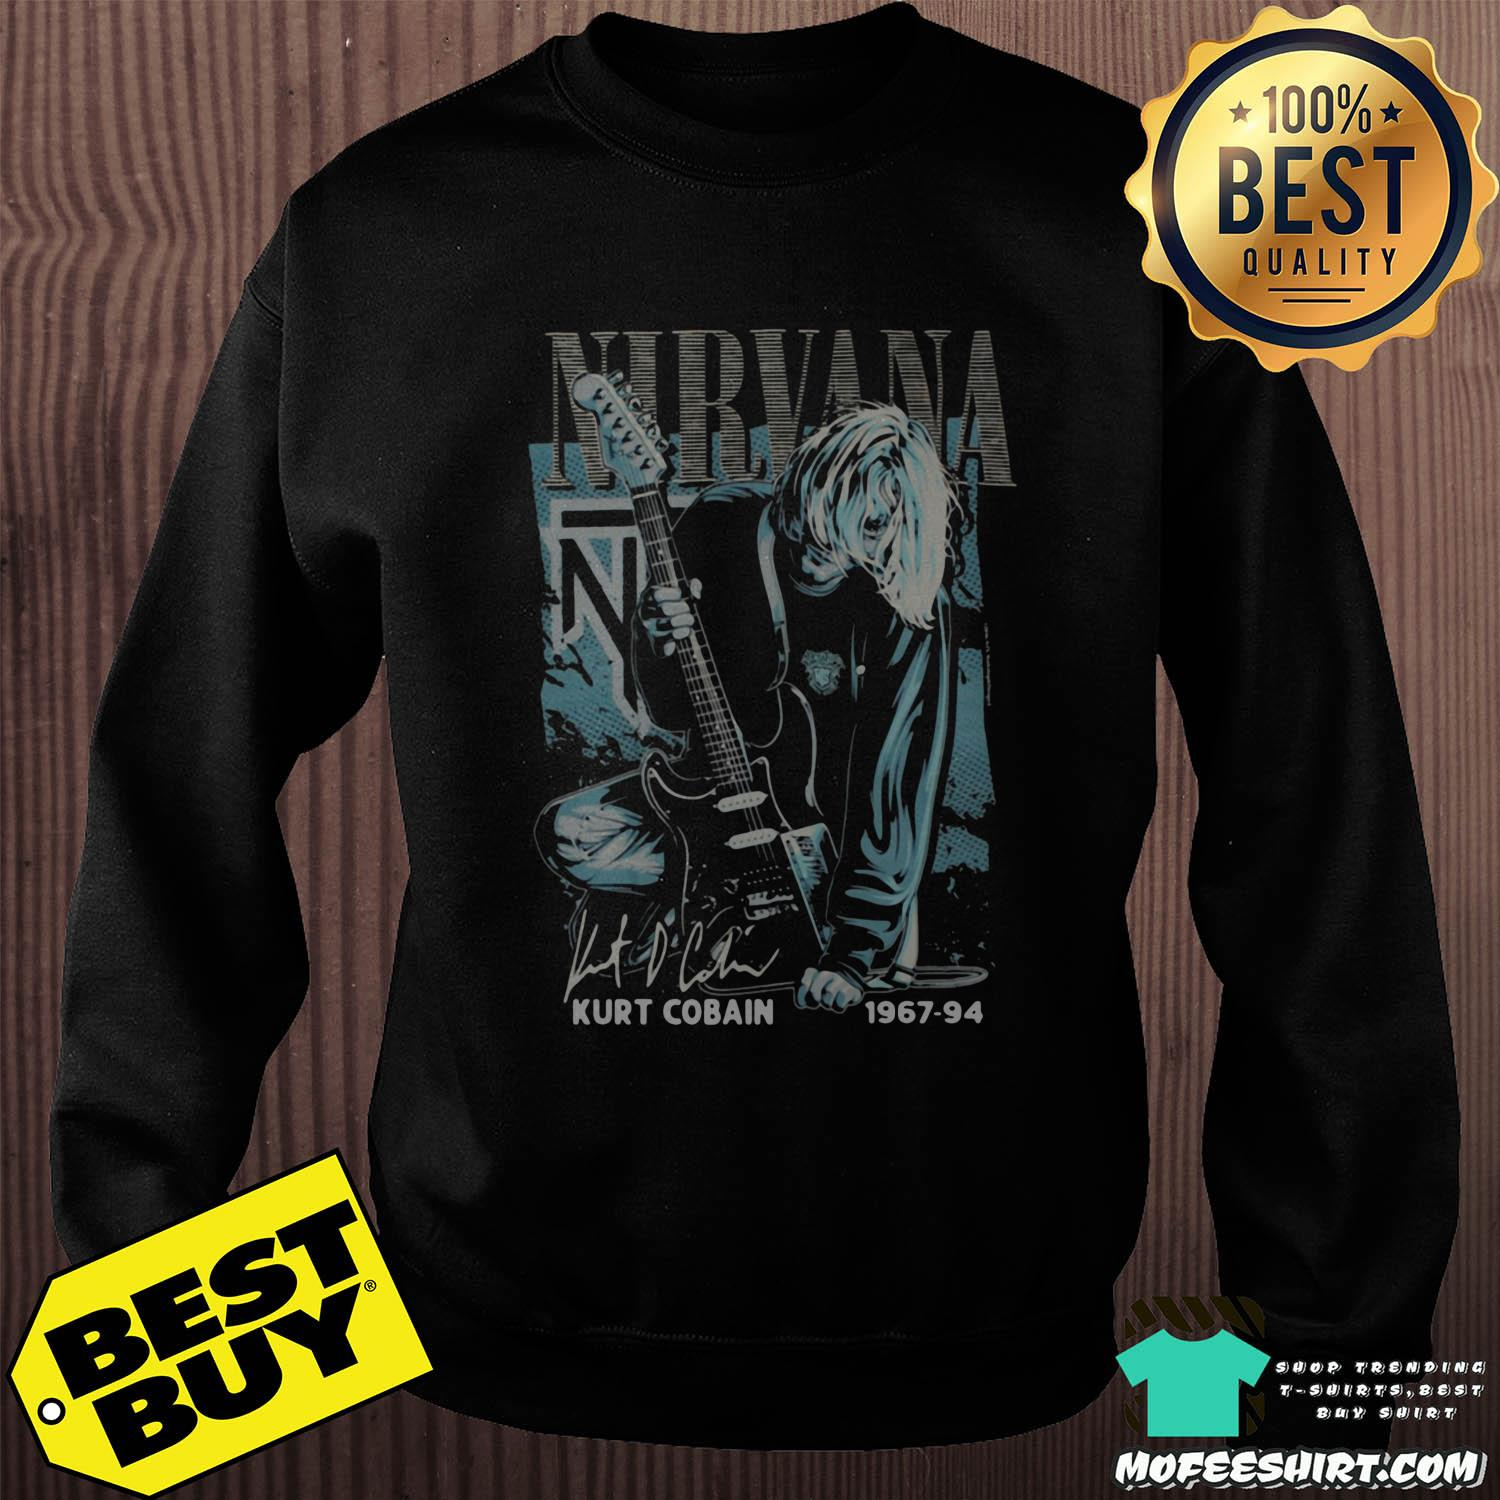 Nirvana Kurt Cobain Guitar 1967-94 Signature Shirt